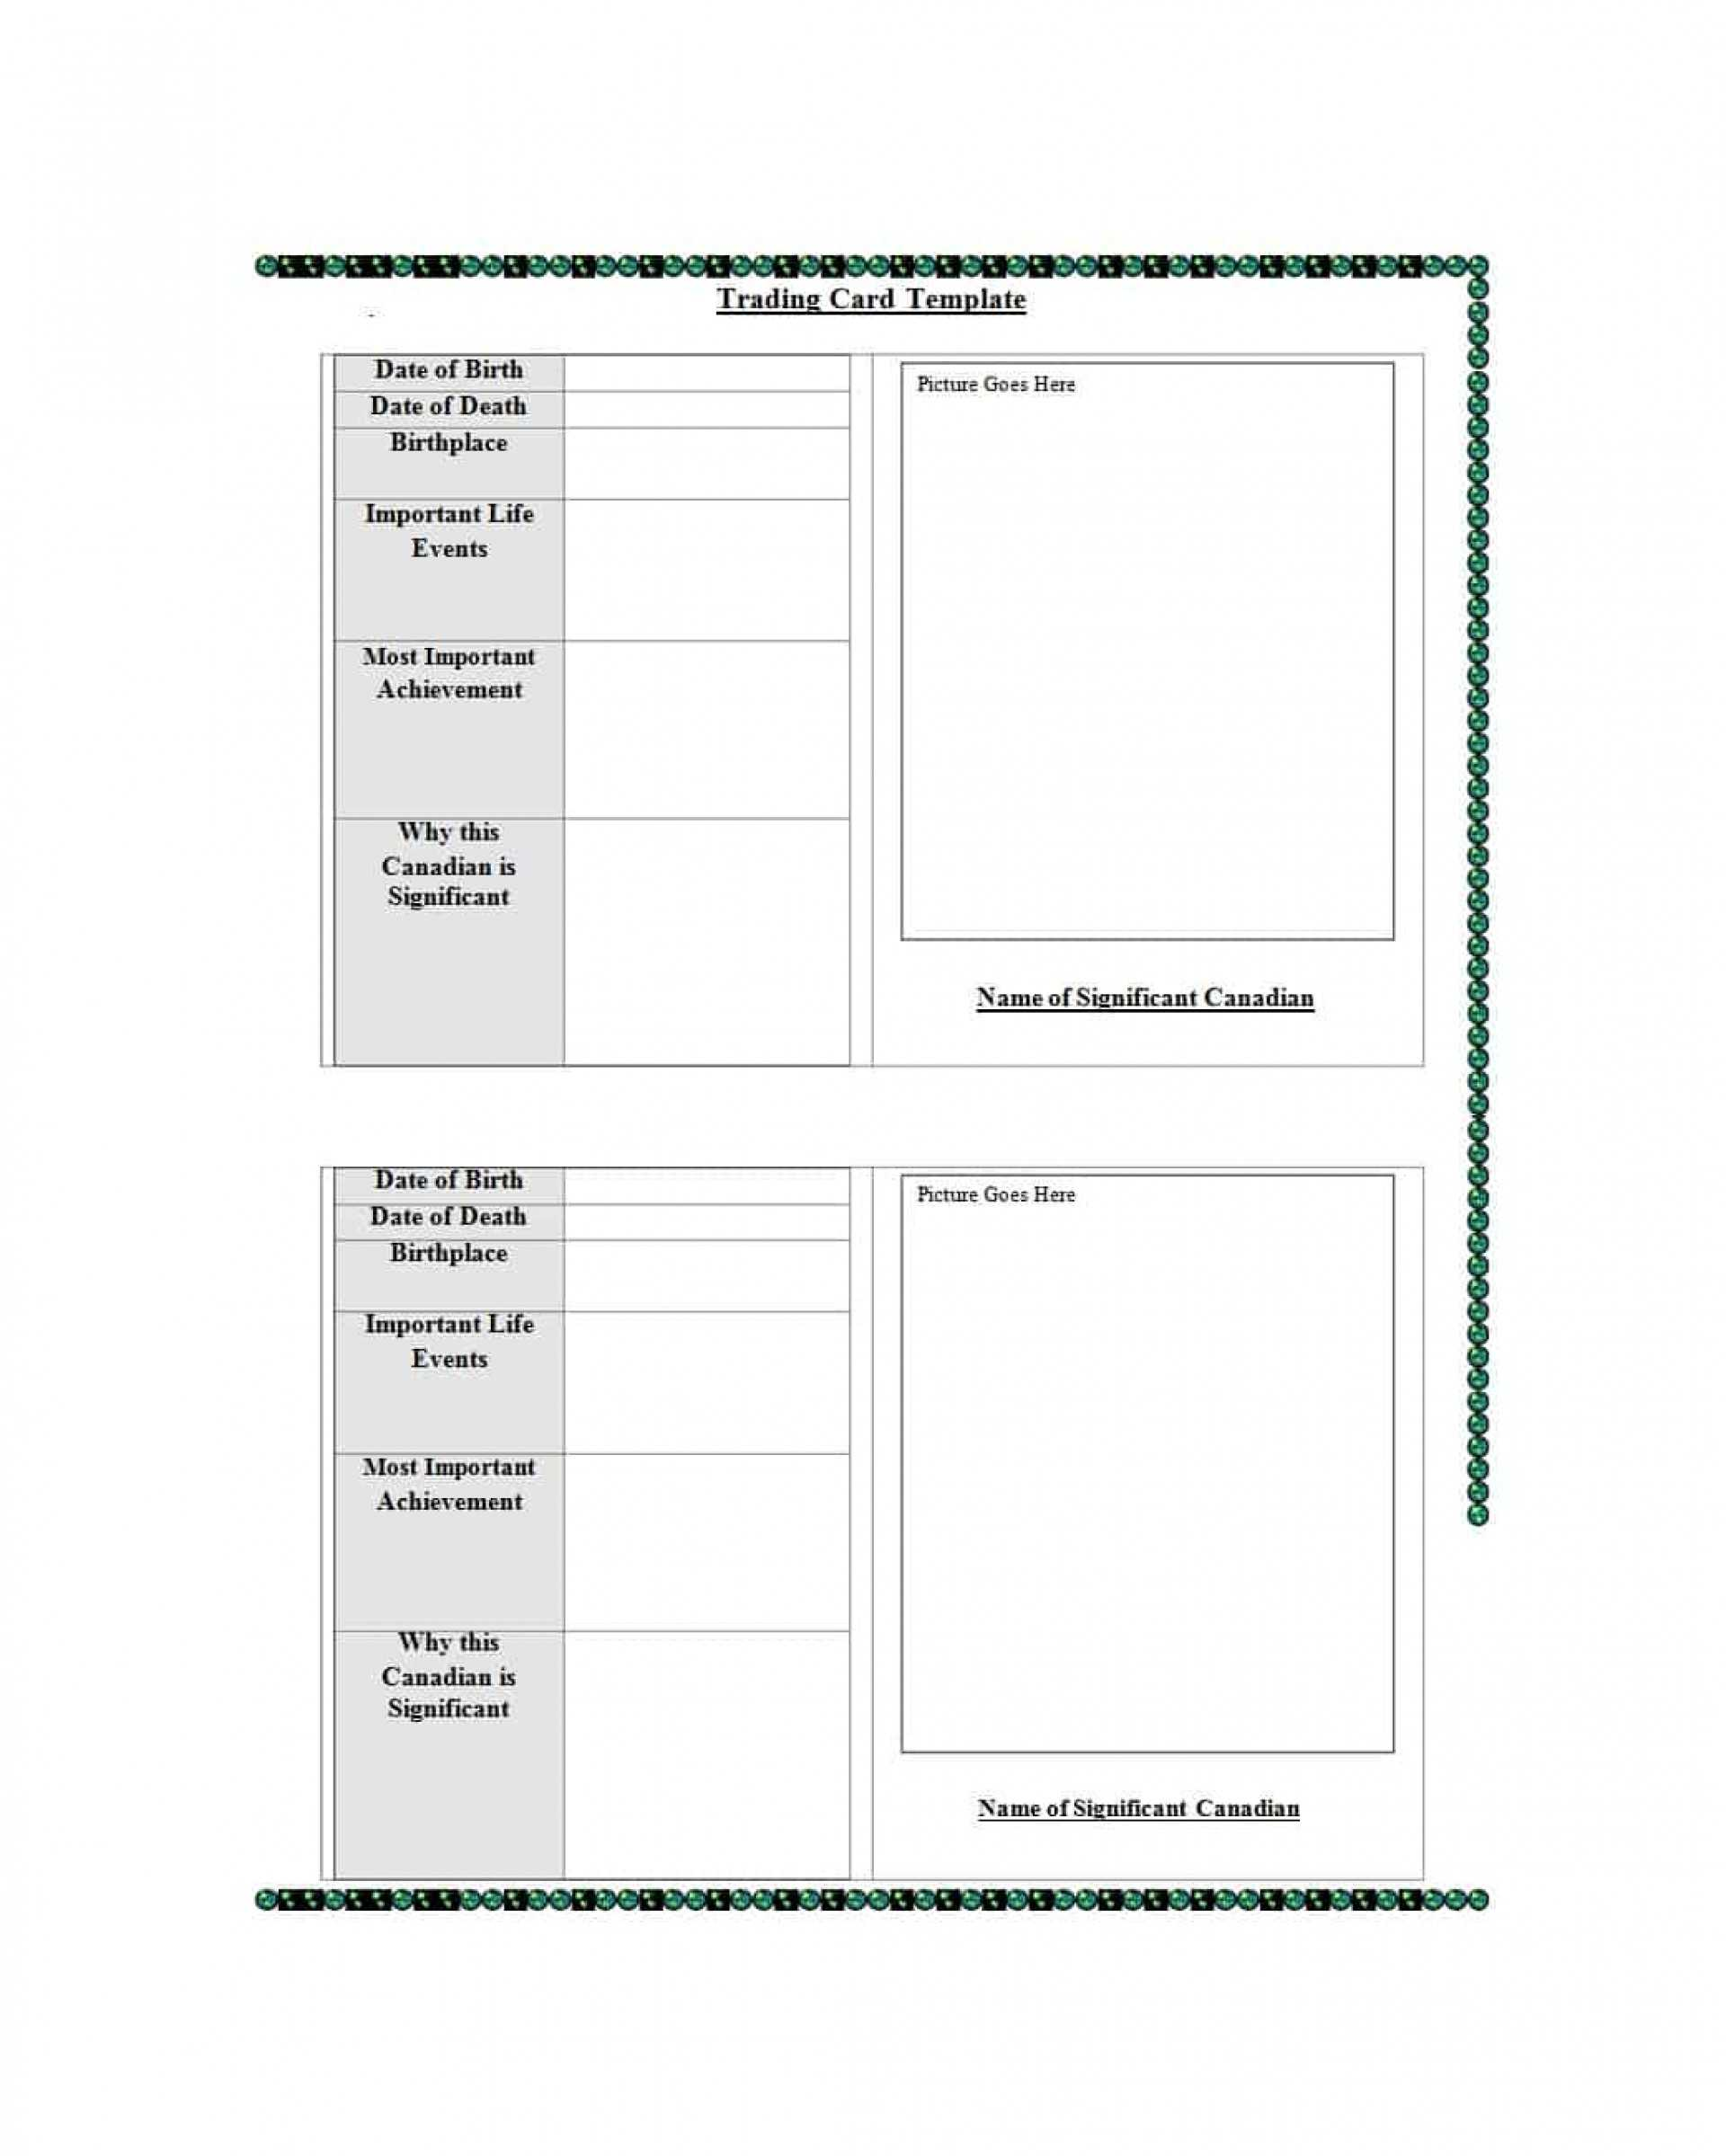 024 Baseball Trading Card Template Free Download Ideas Within Free Trading Card Template Download